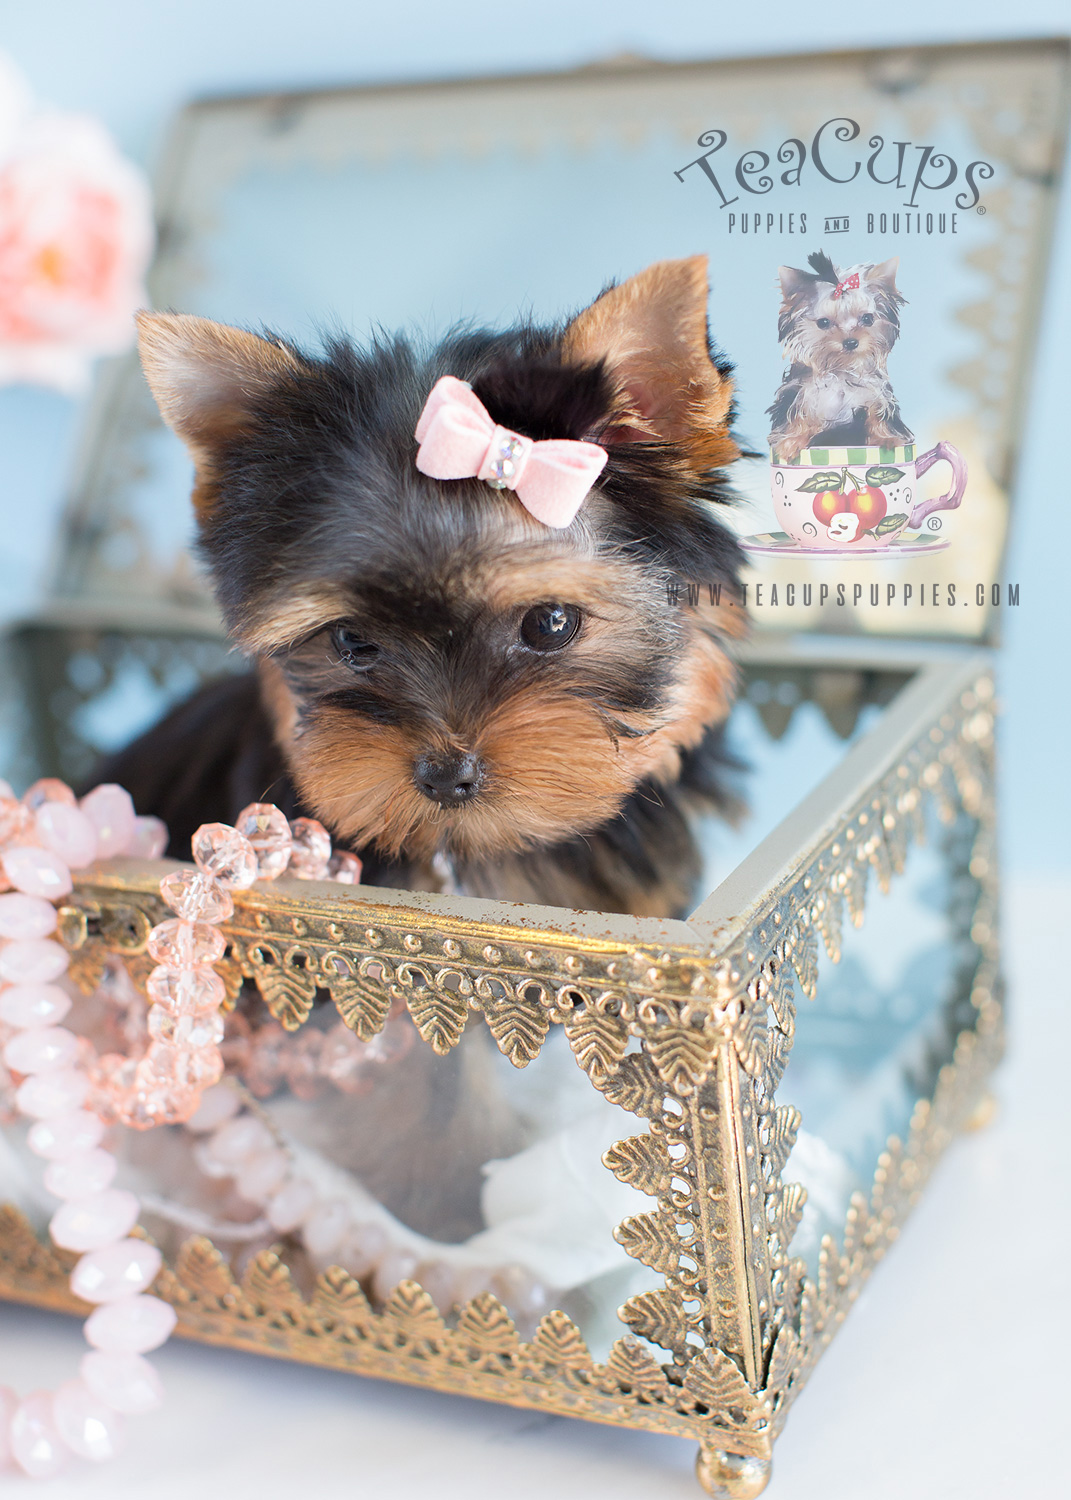 Adorable Teacup Yorkie in a Jewelry Box